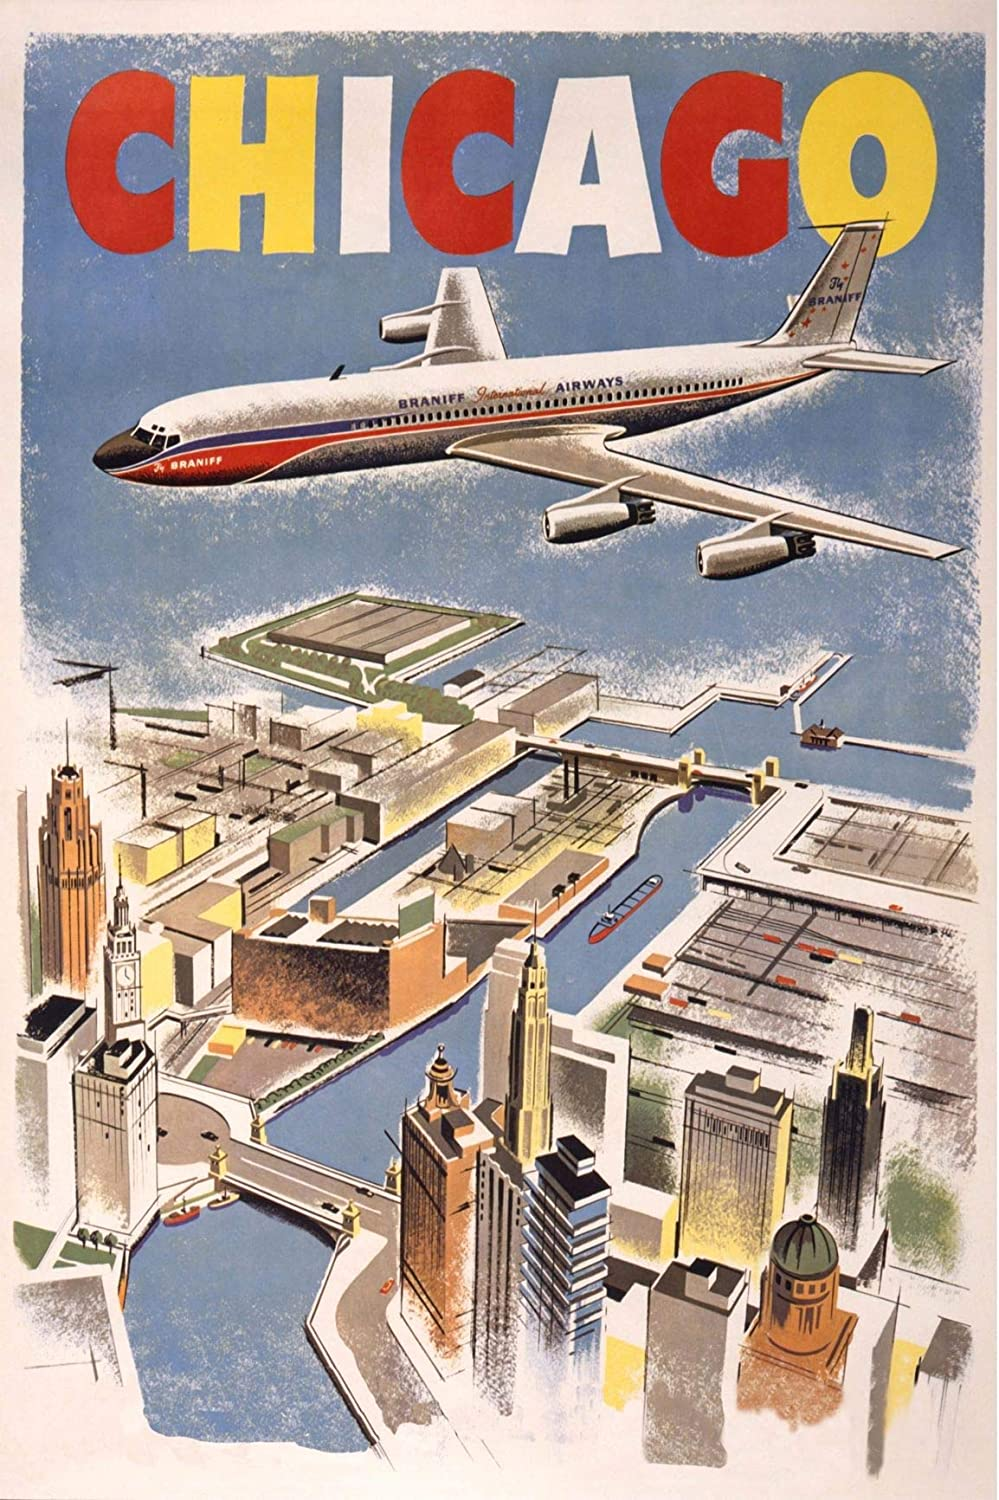 EzPosterPrints - Vintage Style Travel Poster Series- Poster Printing - Wall Art Print for Home Office Decor - Chicago-2-12X18 inches